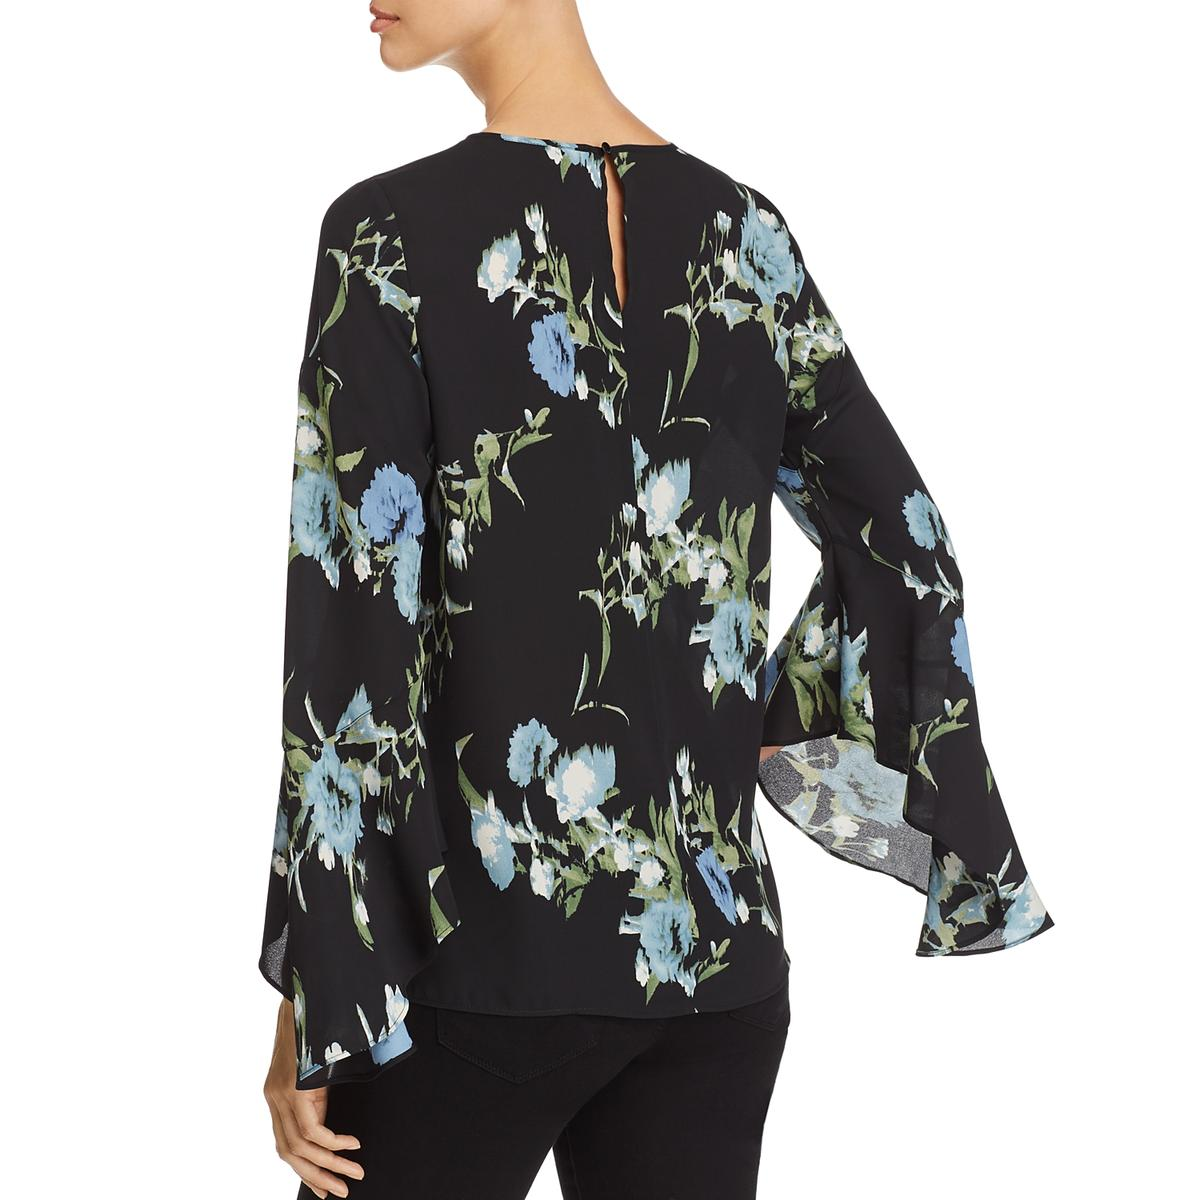 2b2f346fc6f7 Vince Camuto Womens Black Floral Print Bell Sleeves Blouse Top XS ...